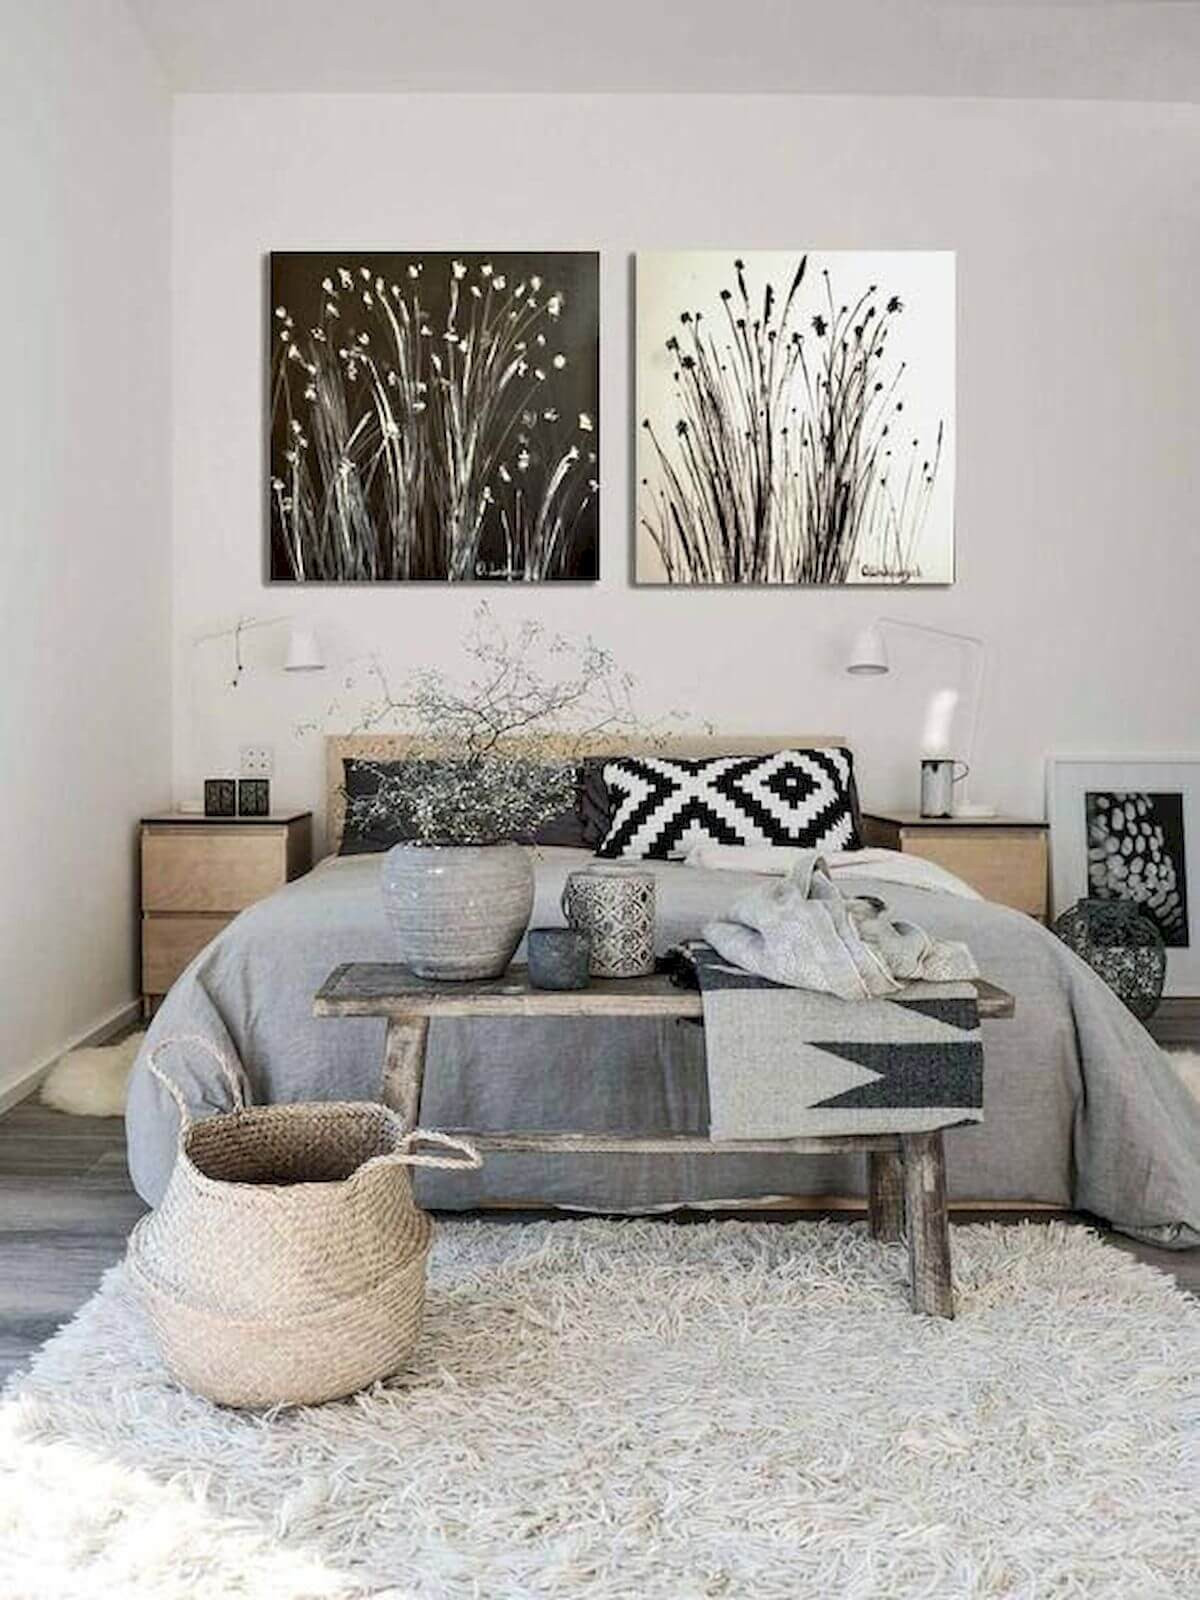 Grayscale Natural Bedroom Full of Texture